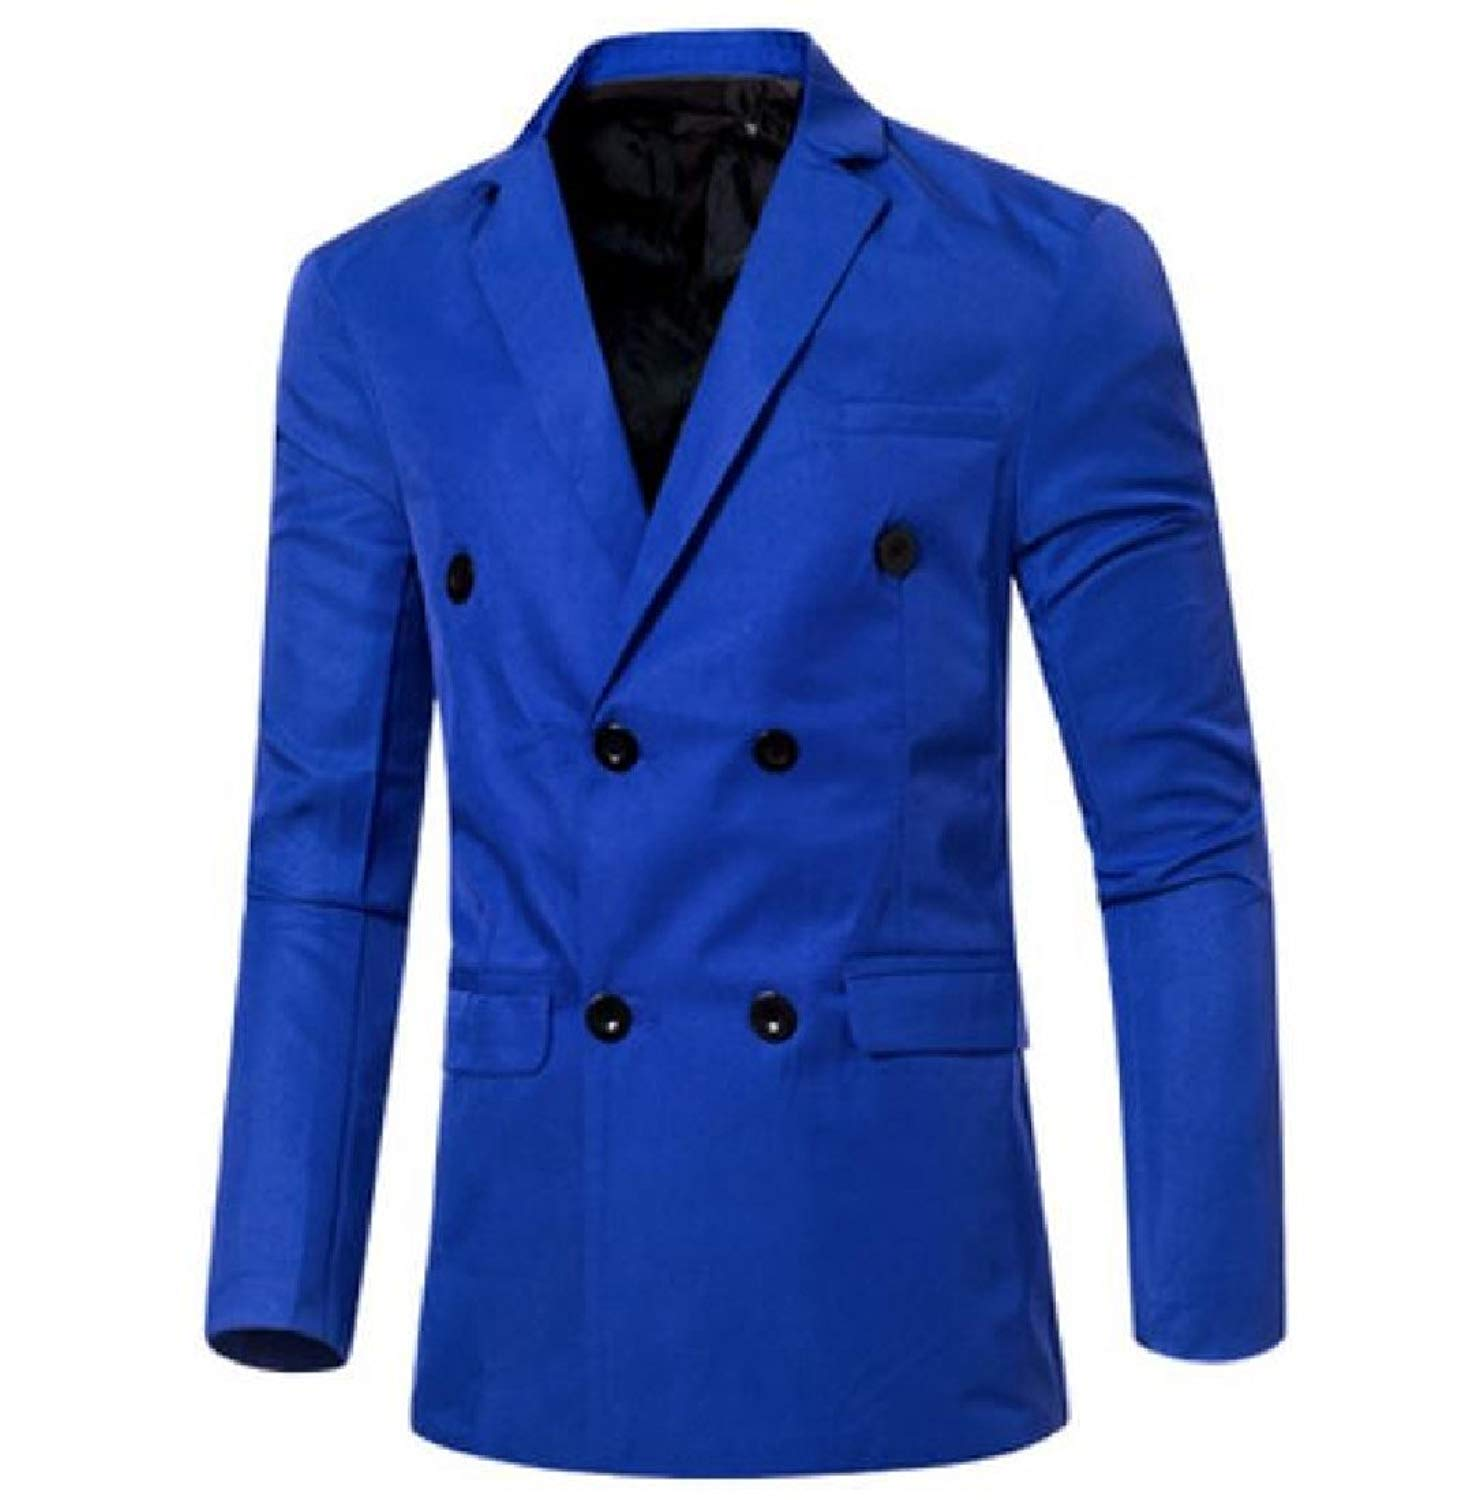 RDHOPE-Men Fall Winter Notch Lapel Patch Suit Double-Breasted Jacket Blazer